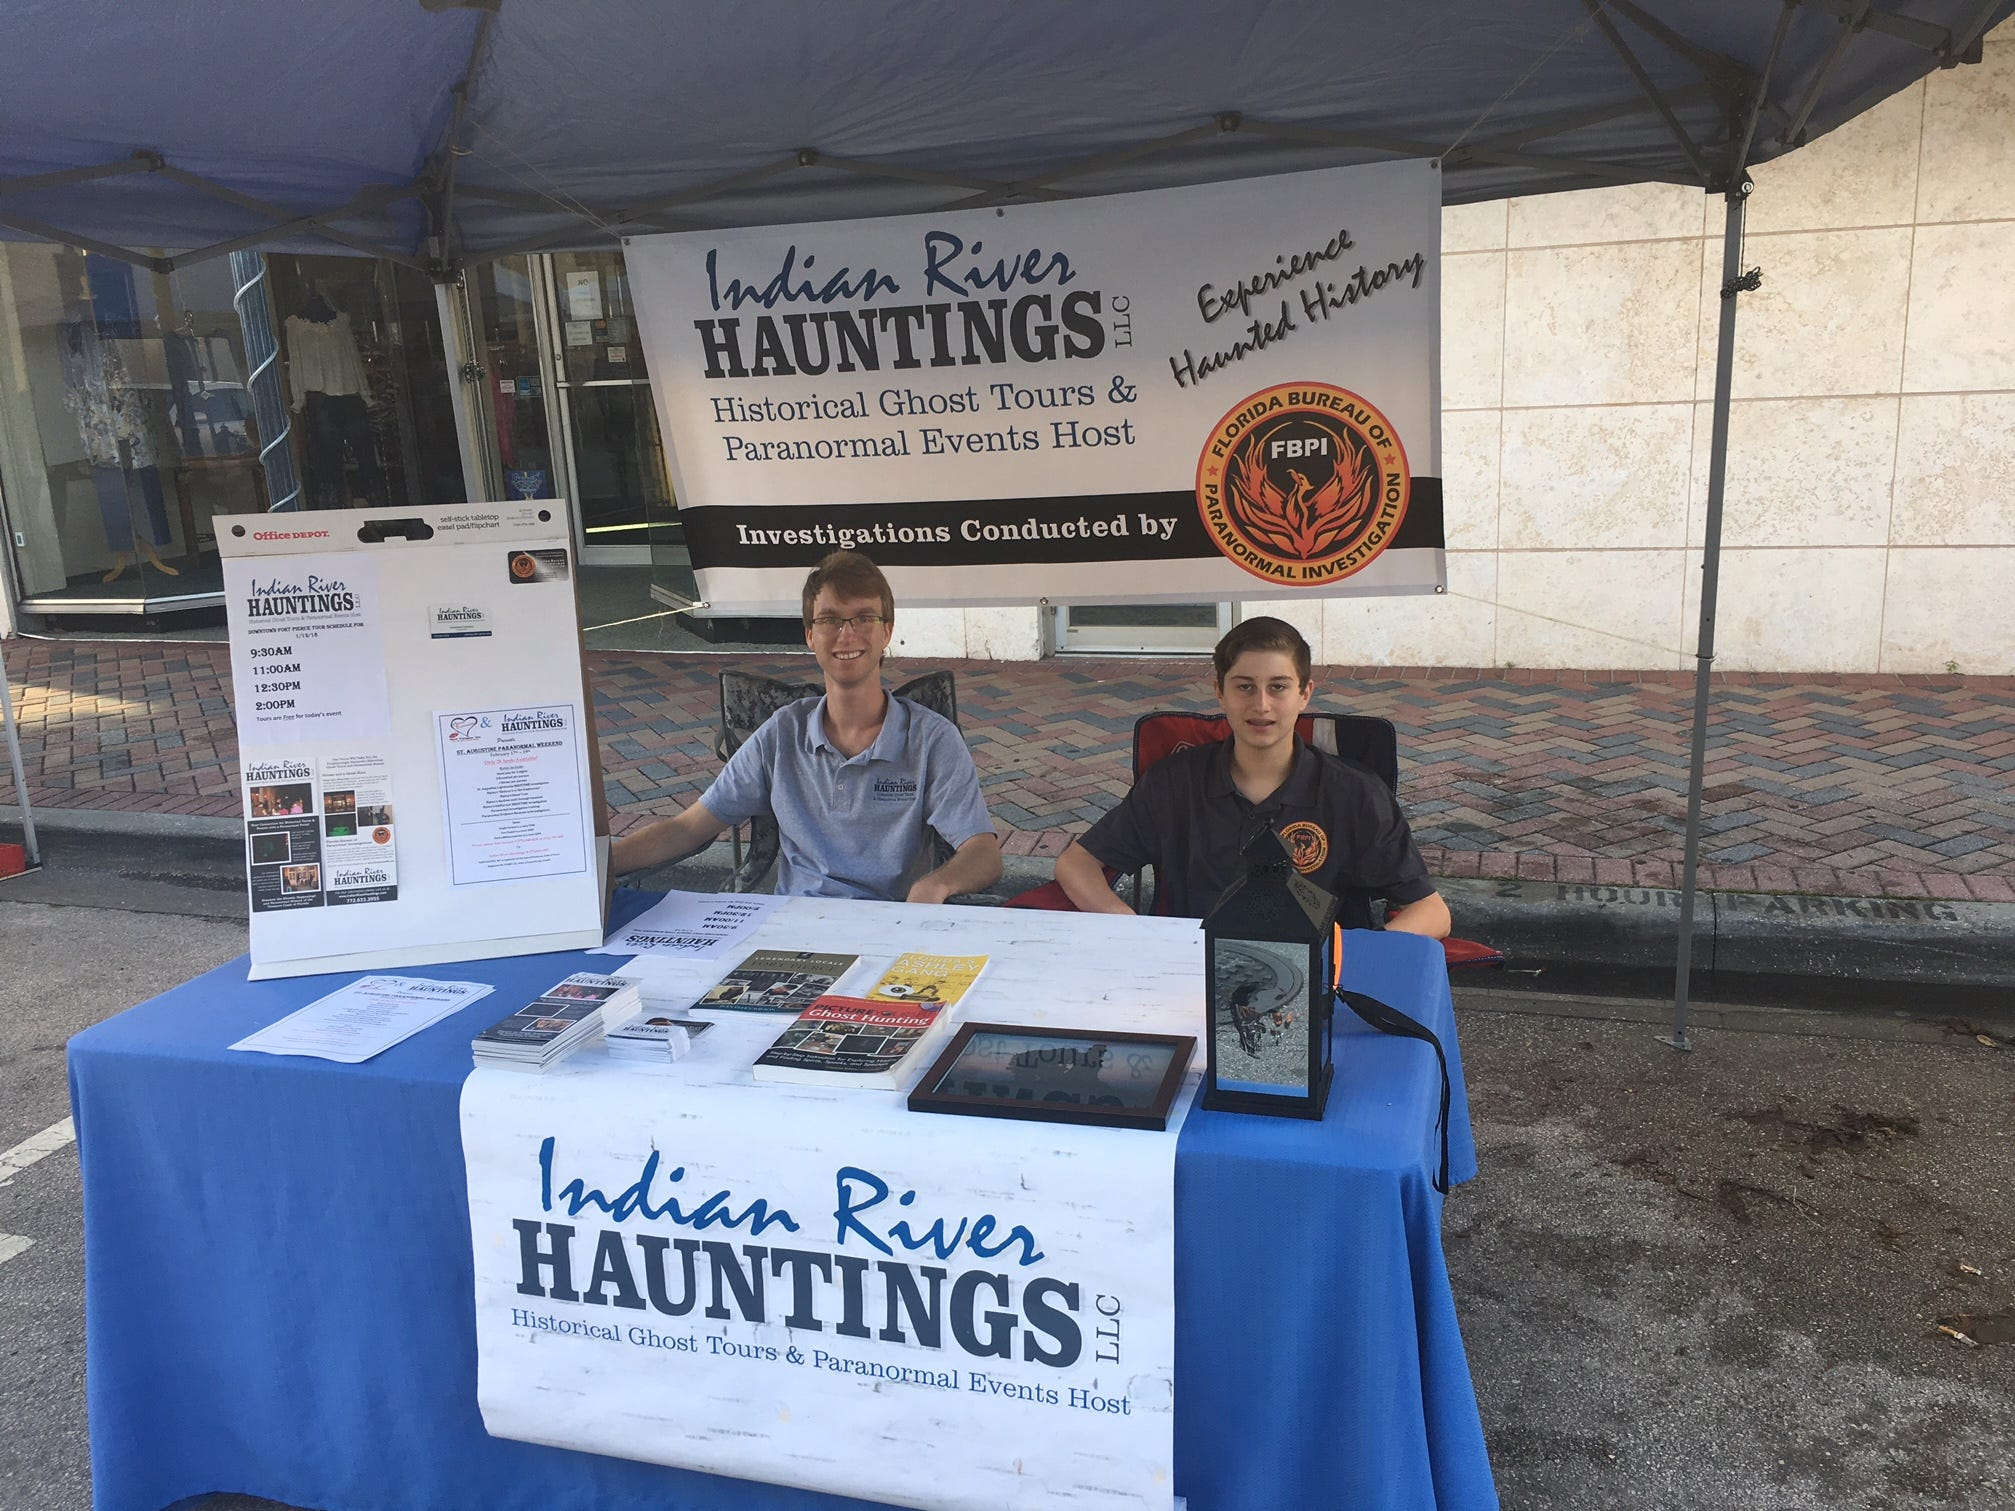 Paranormal activity meets history on the Indian River Hauntings ghost tours in Fellsmere, Vero Beach and Sebastian. Investigator Larry Lawson's son, Ryan, and nephew, Liam Ritchie, man the booth at the Treasure Coast History Festival.